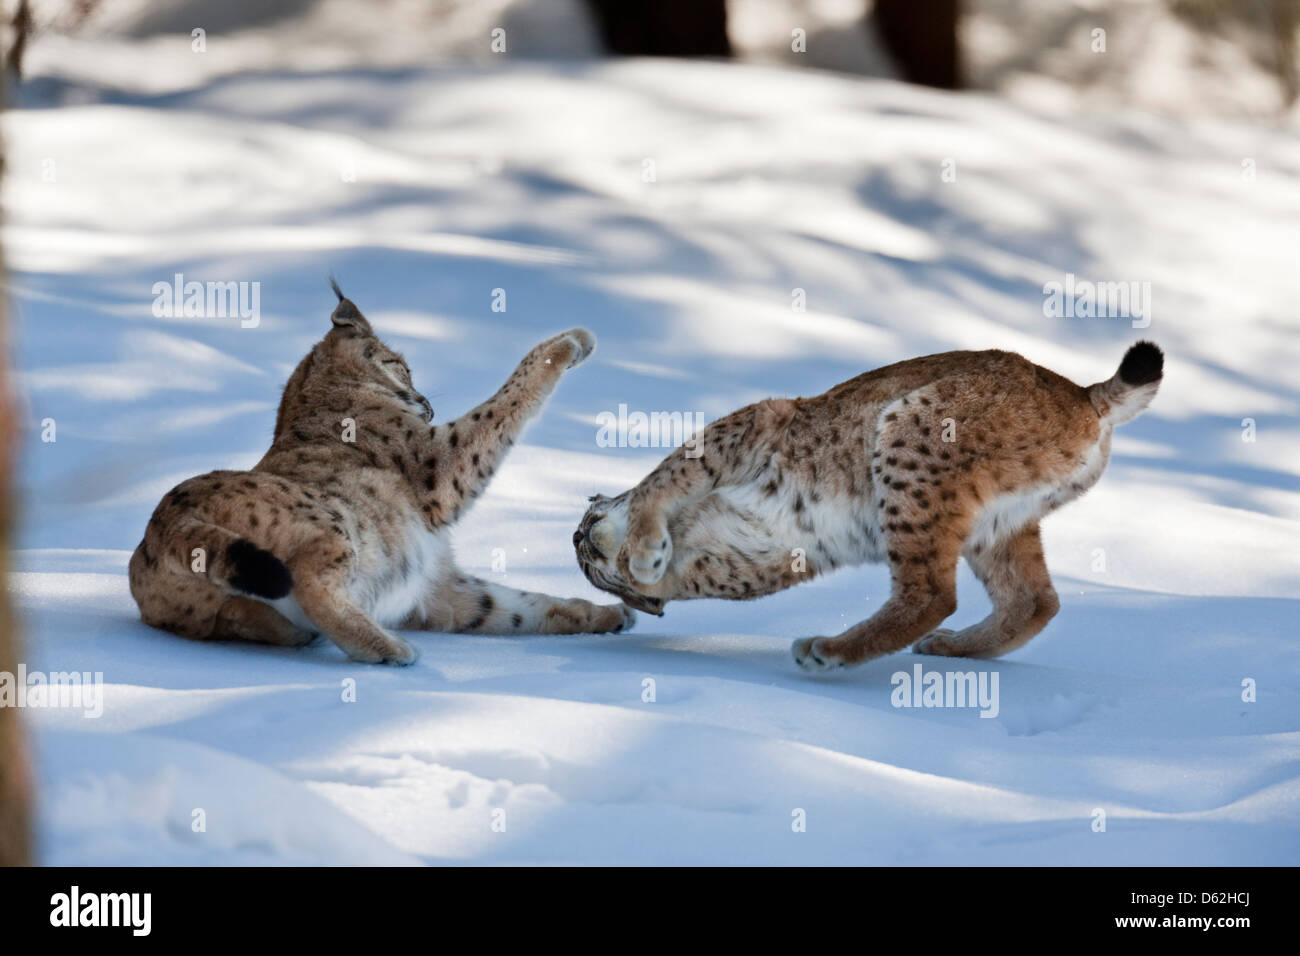 Pair of Eurasian Lynx (Lynx lynx), subspecies carpathica, in snow, playing. Germany, Bavaria, National Park Bayerischer - Stock Image